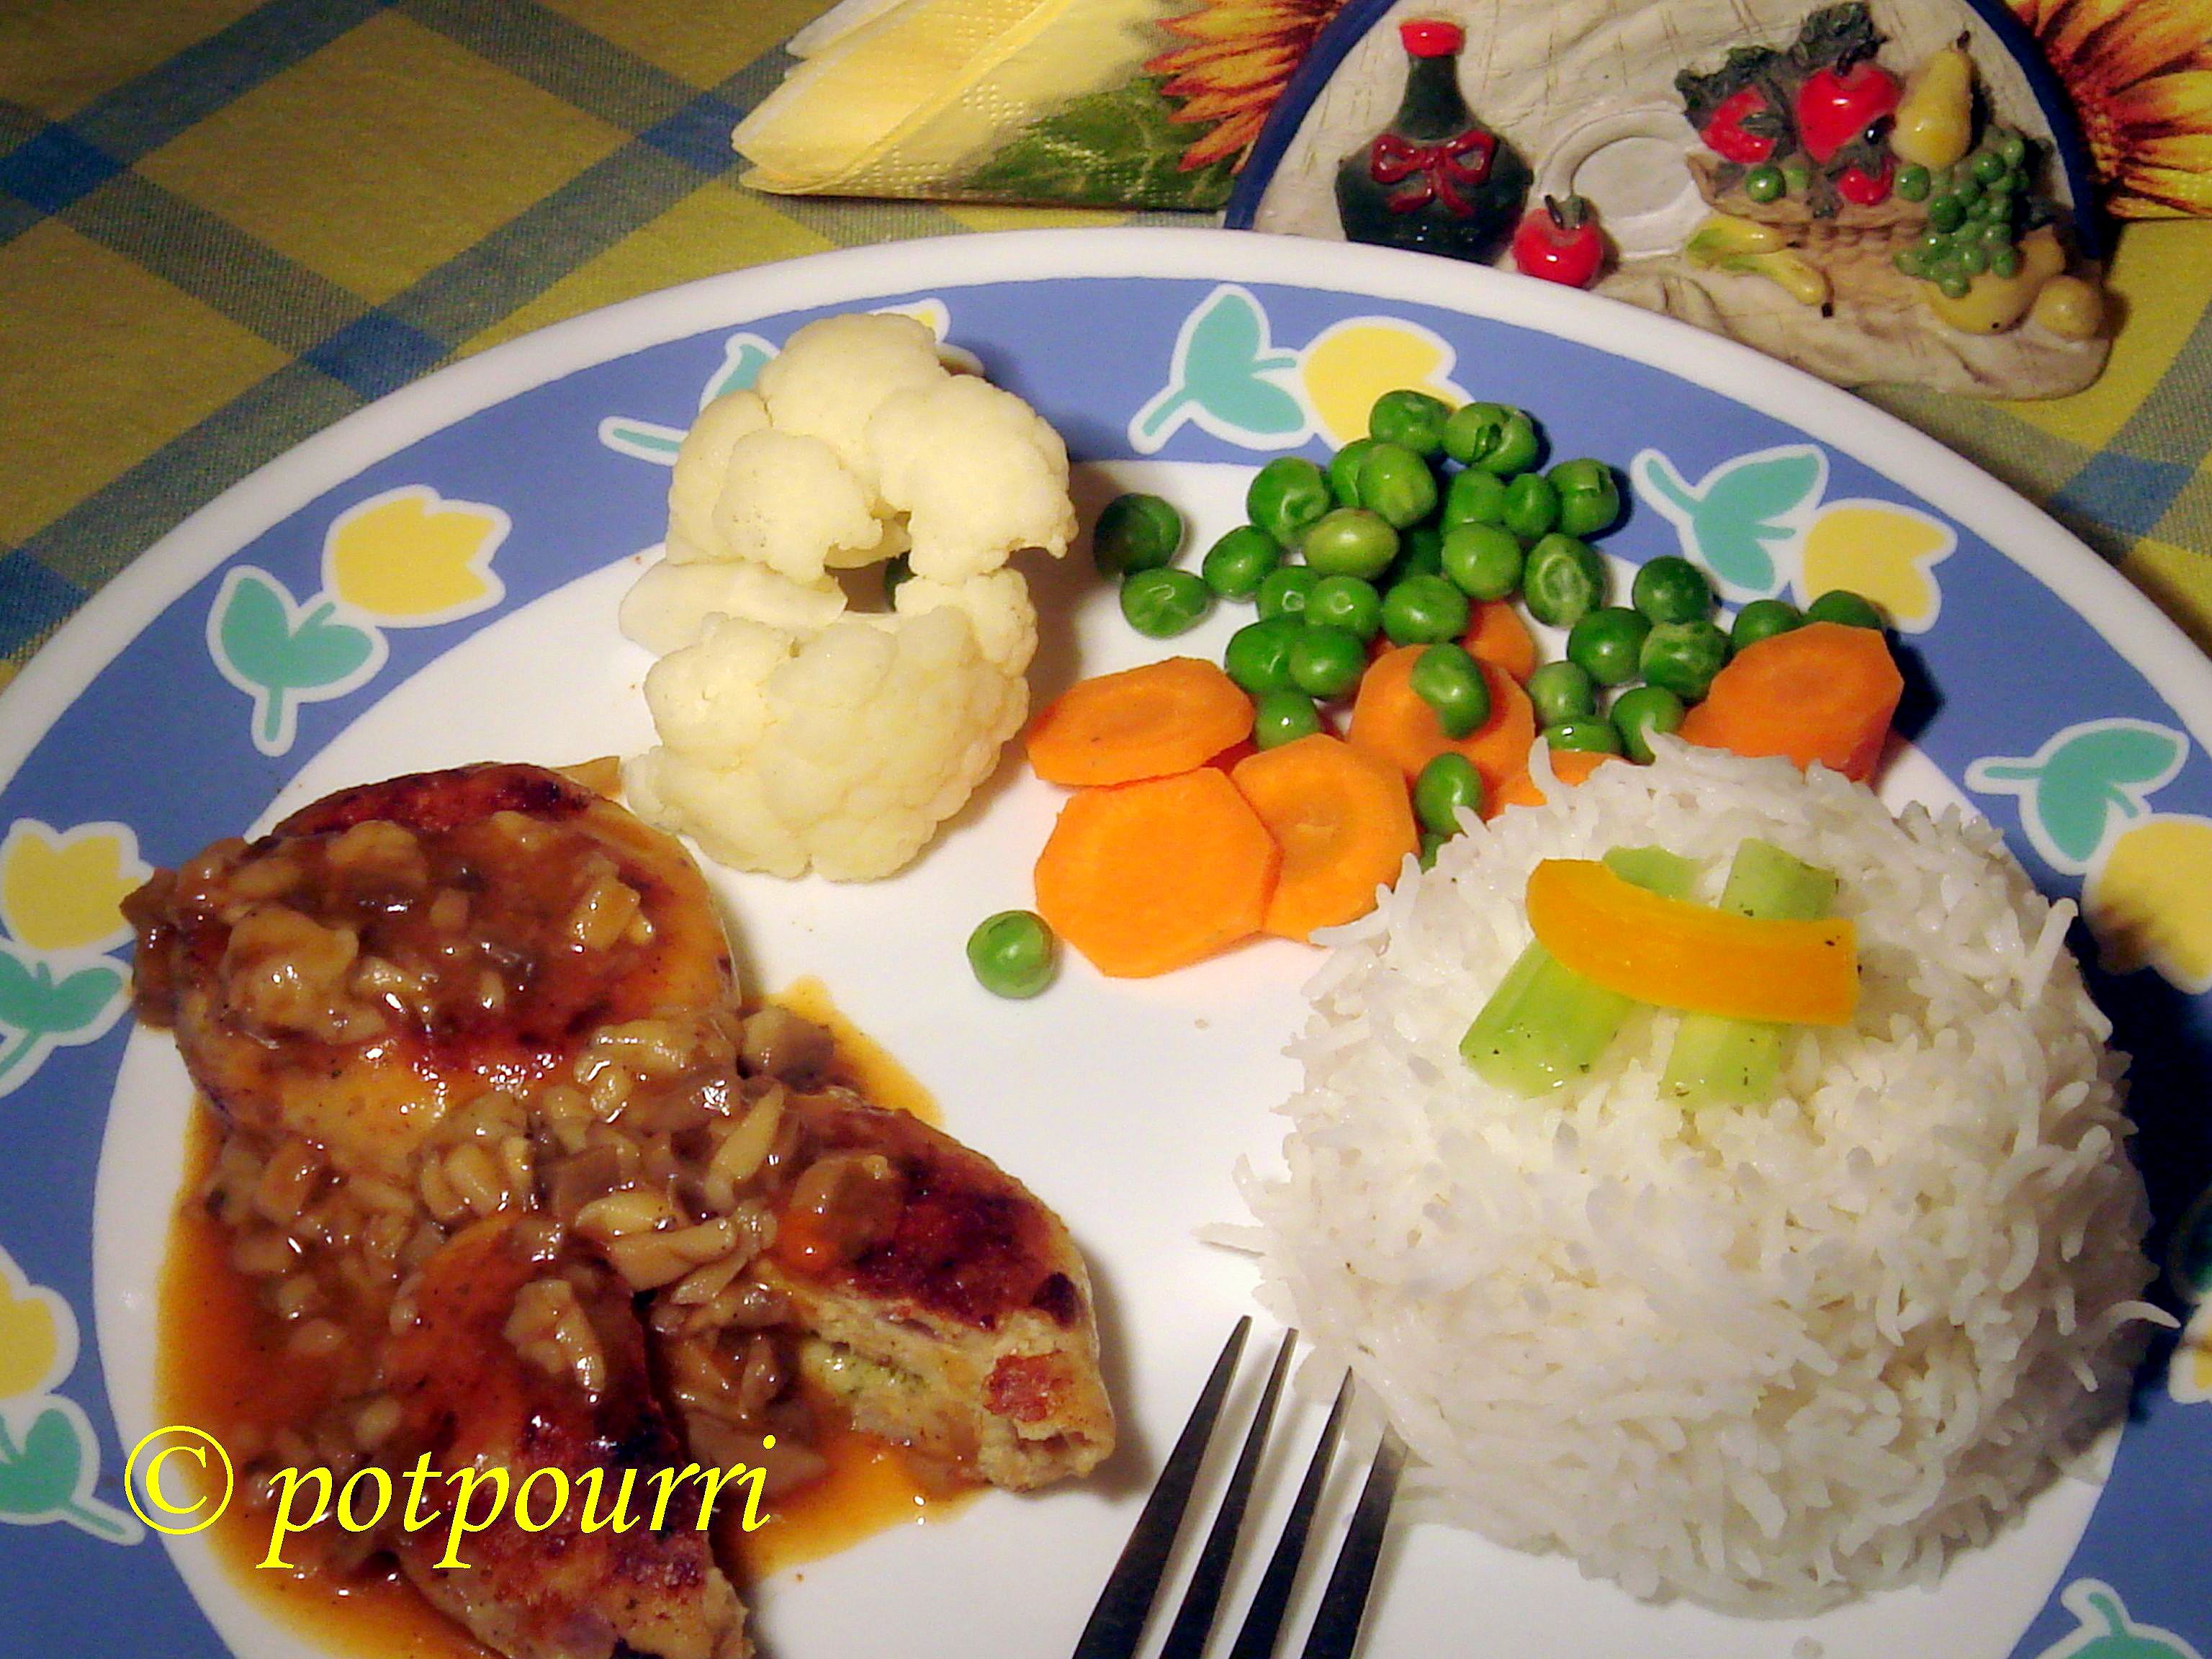 Stuffed Chicken Minced Steak with Mushroom Sauce picture